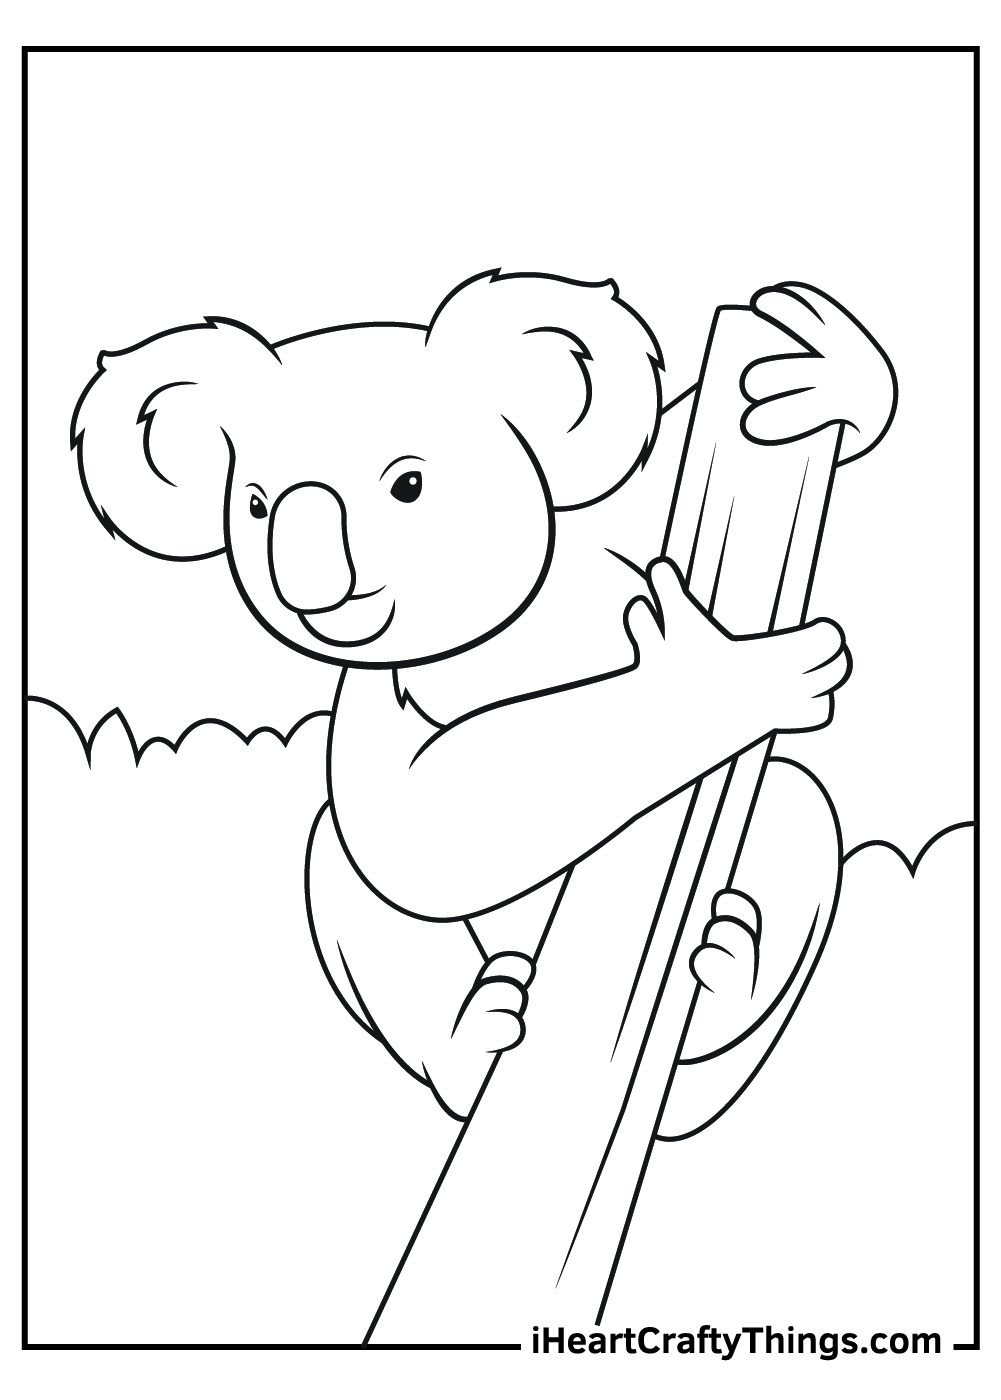 free printable realistic panda coloring pages